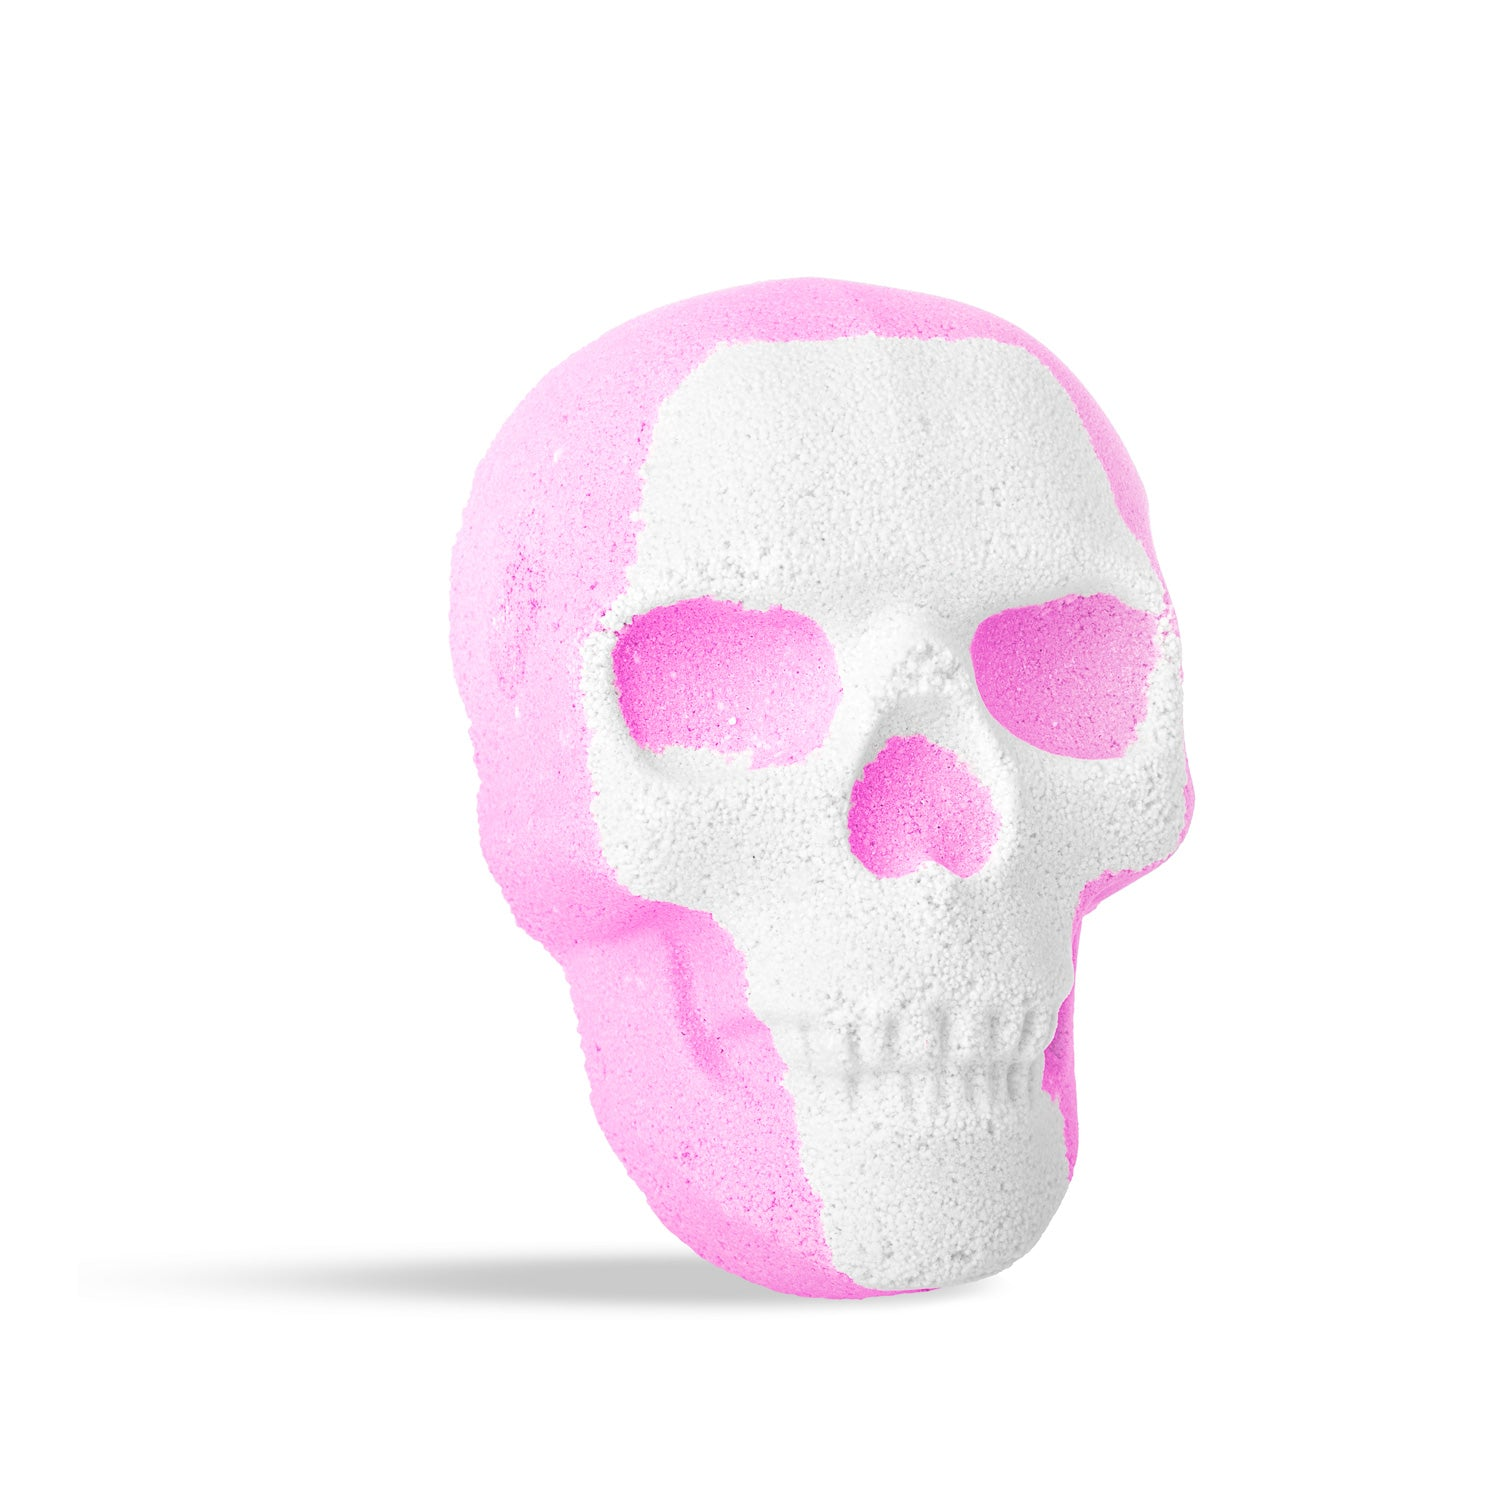 BEYOND THE SOAP - Skull-Shaped Scented Handmade Bath Bombs